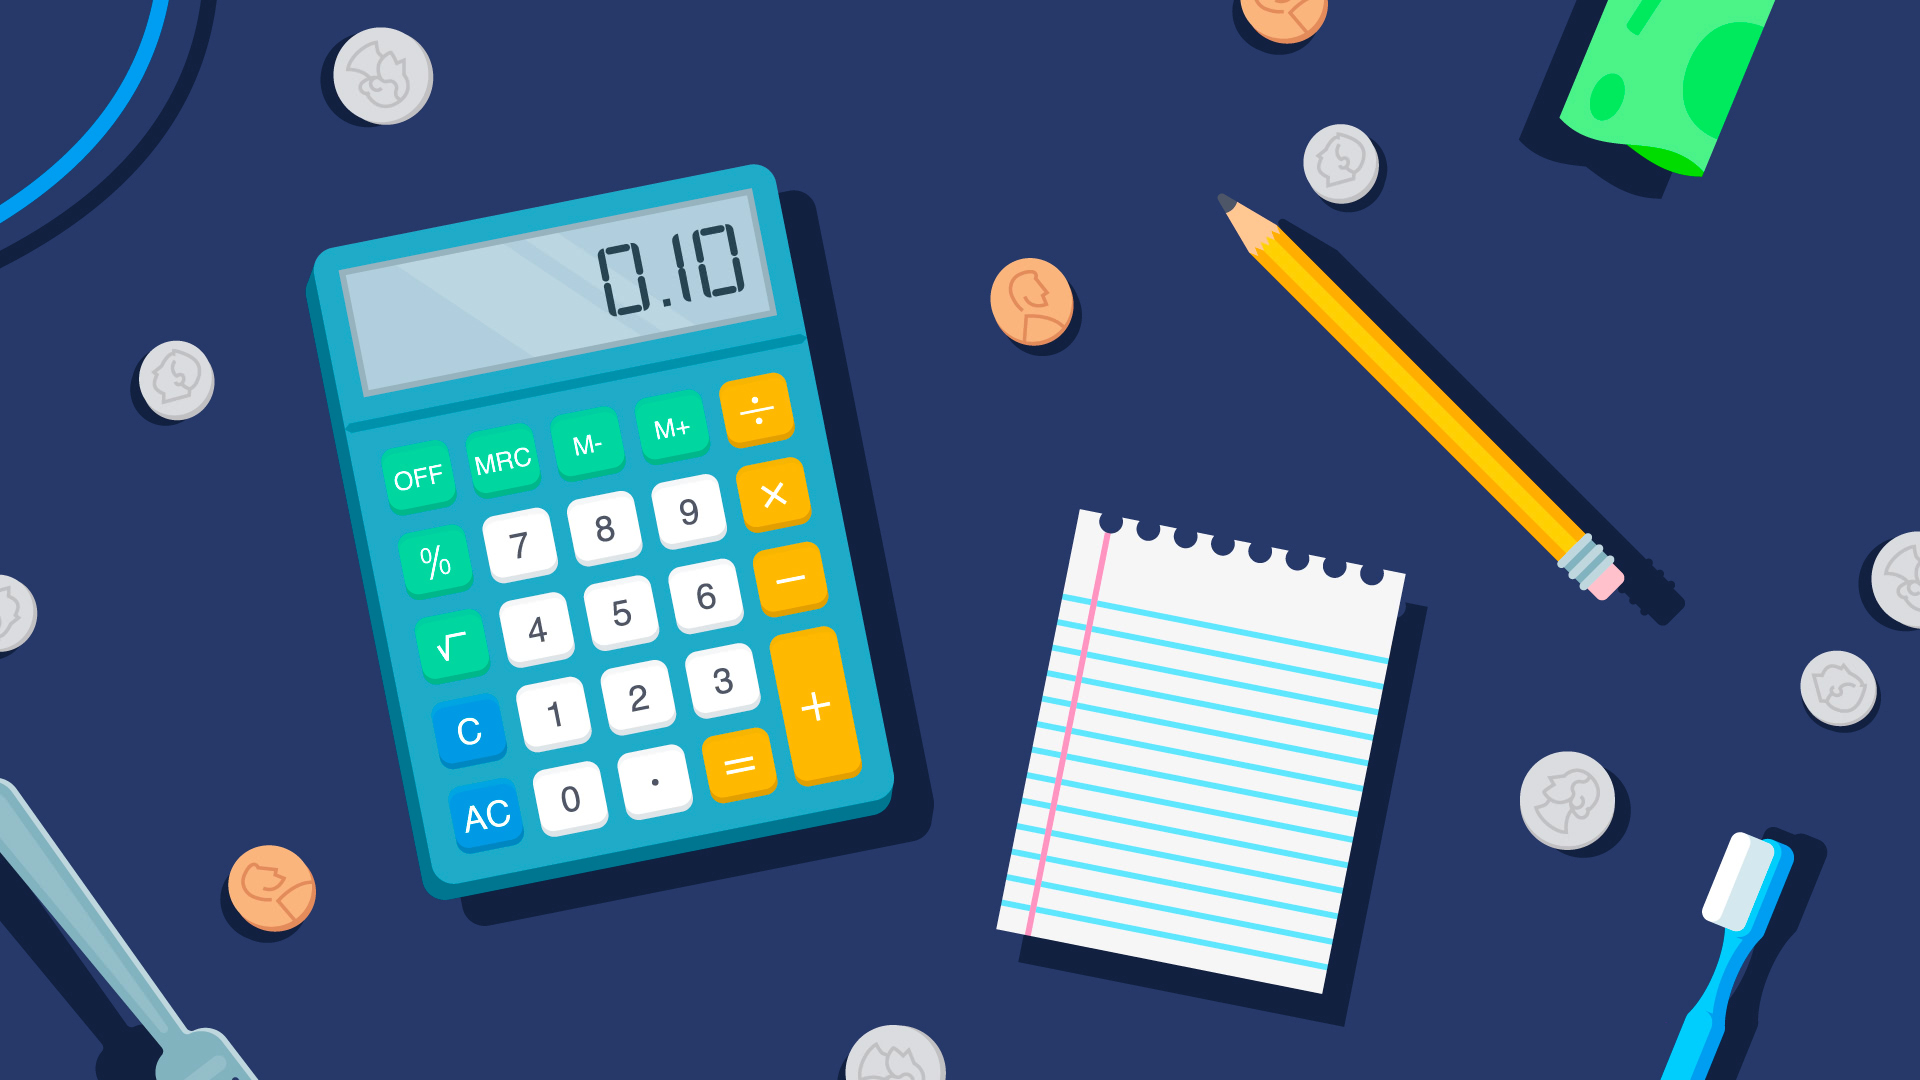 calculator and notepad